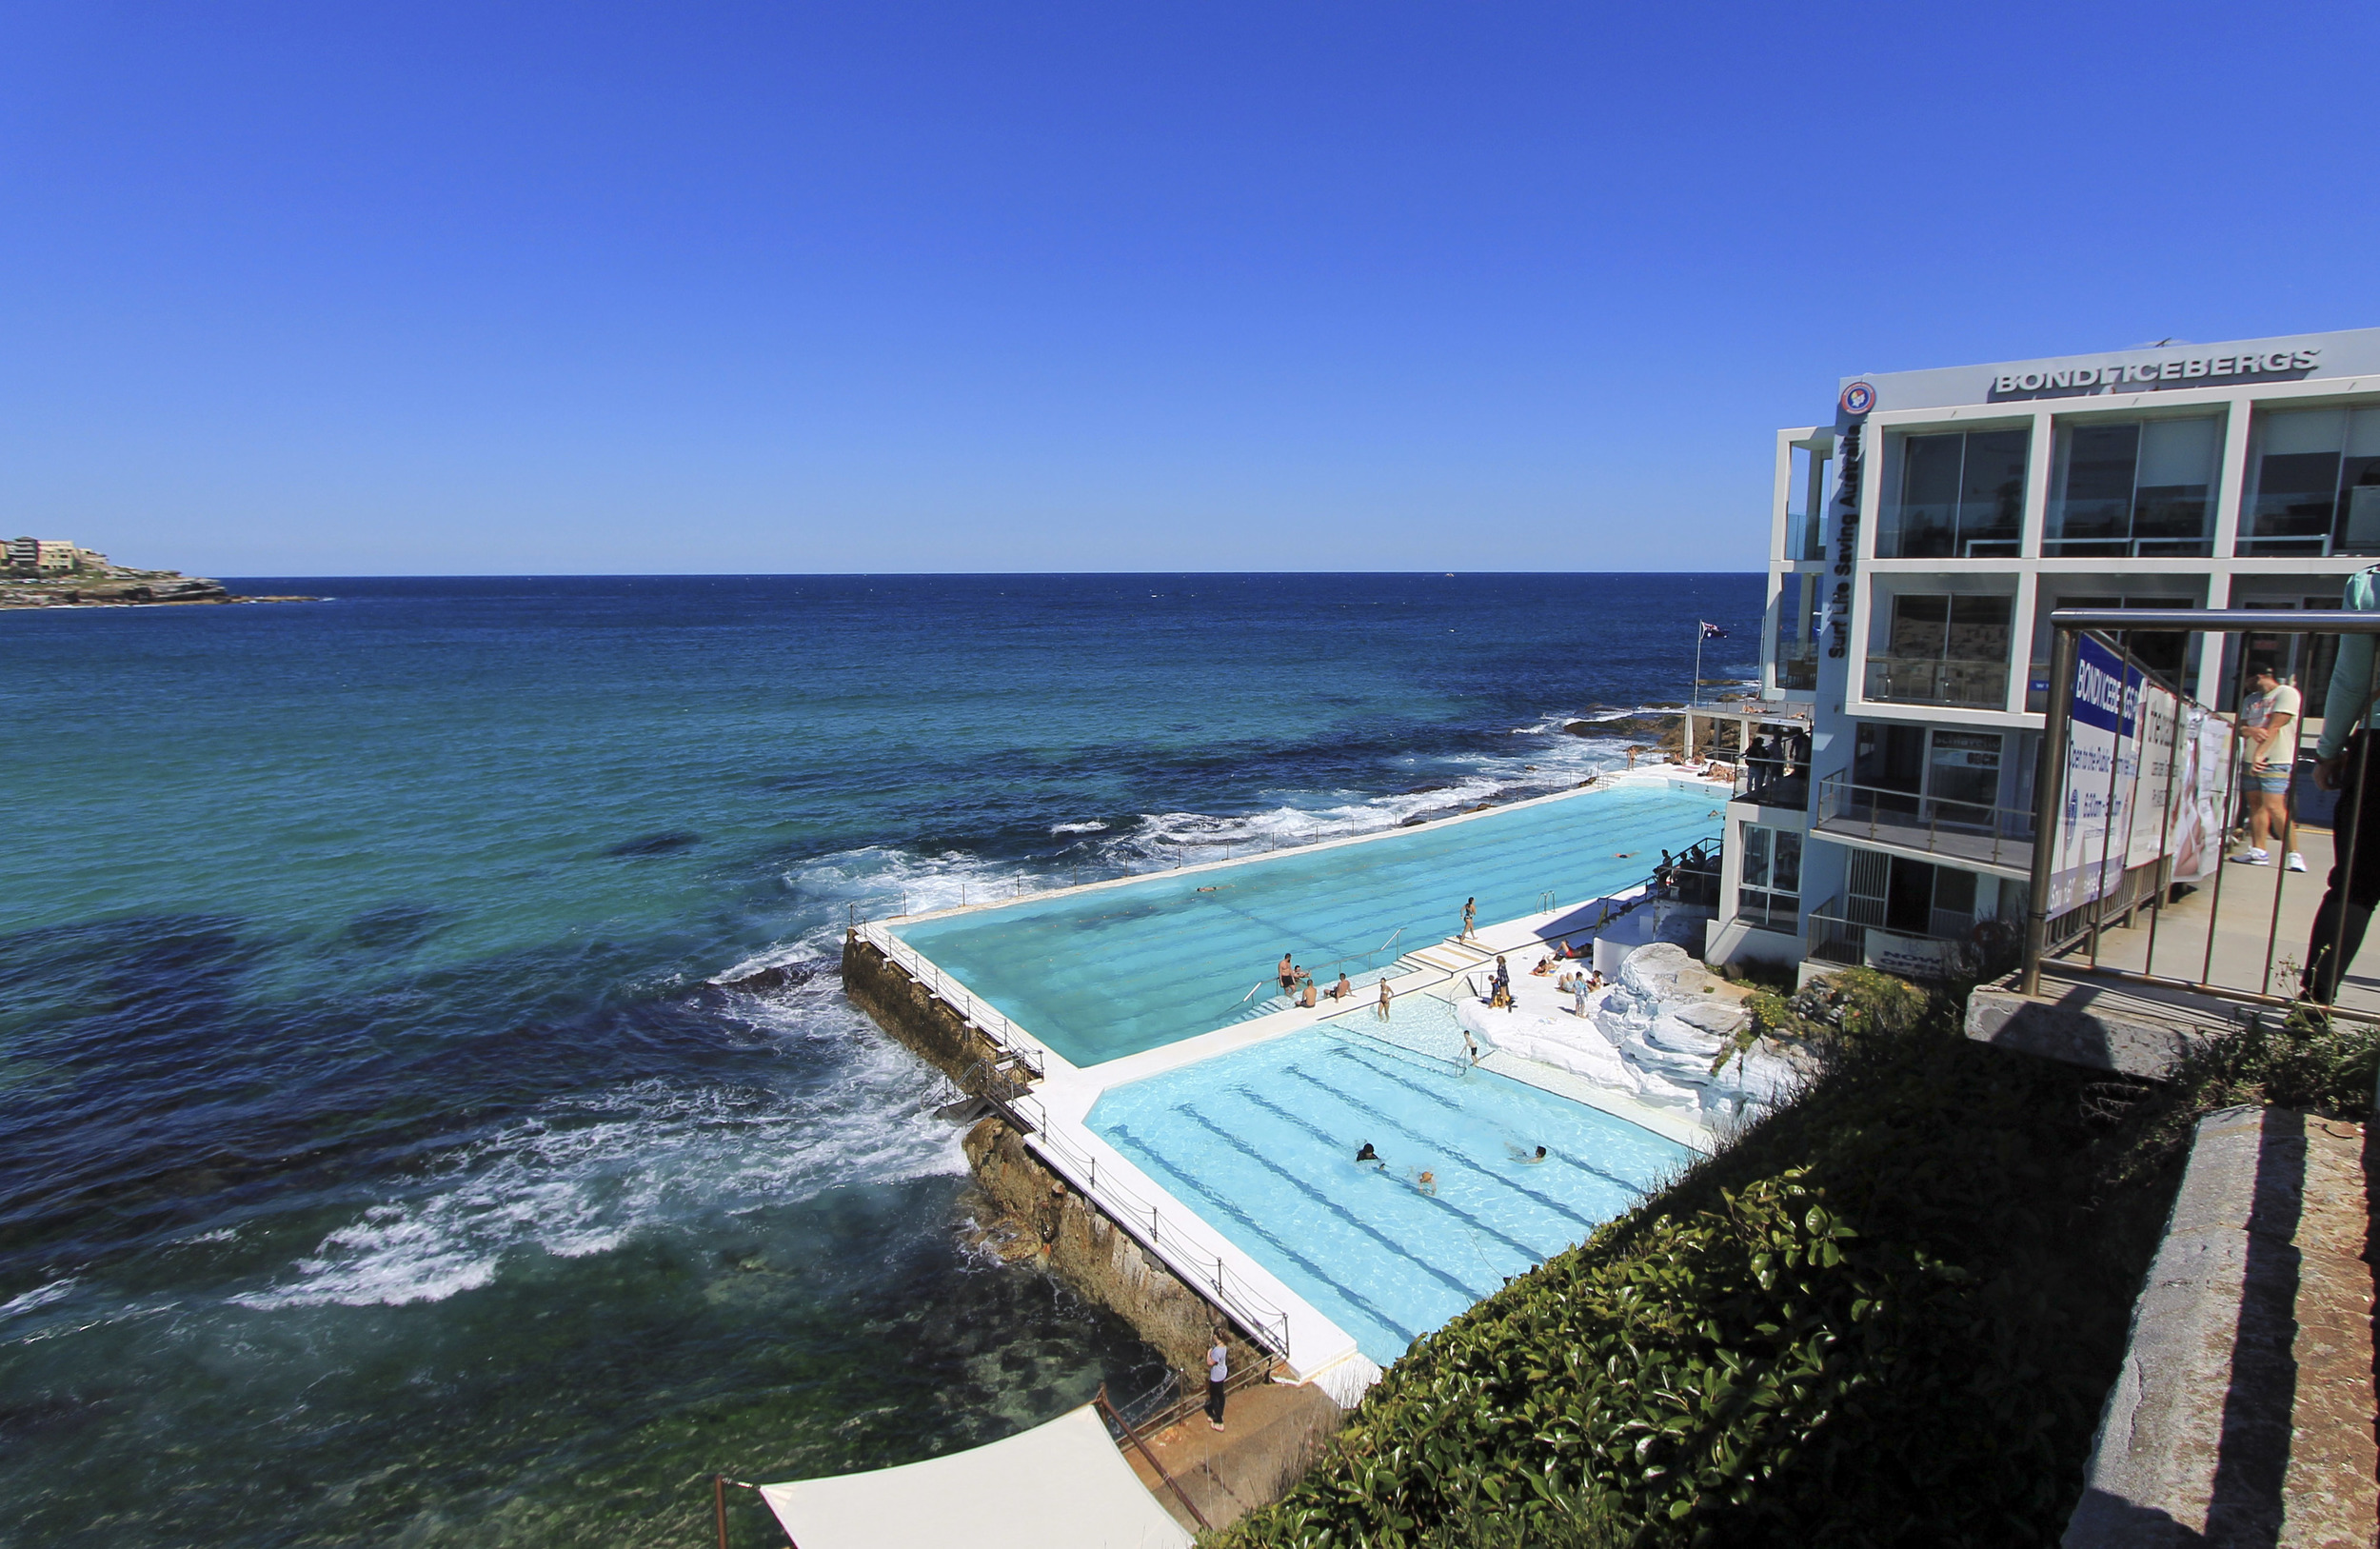 bondi icebergs pool bar beach ocean sydney vacation.jpg